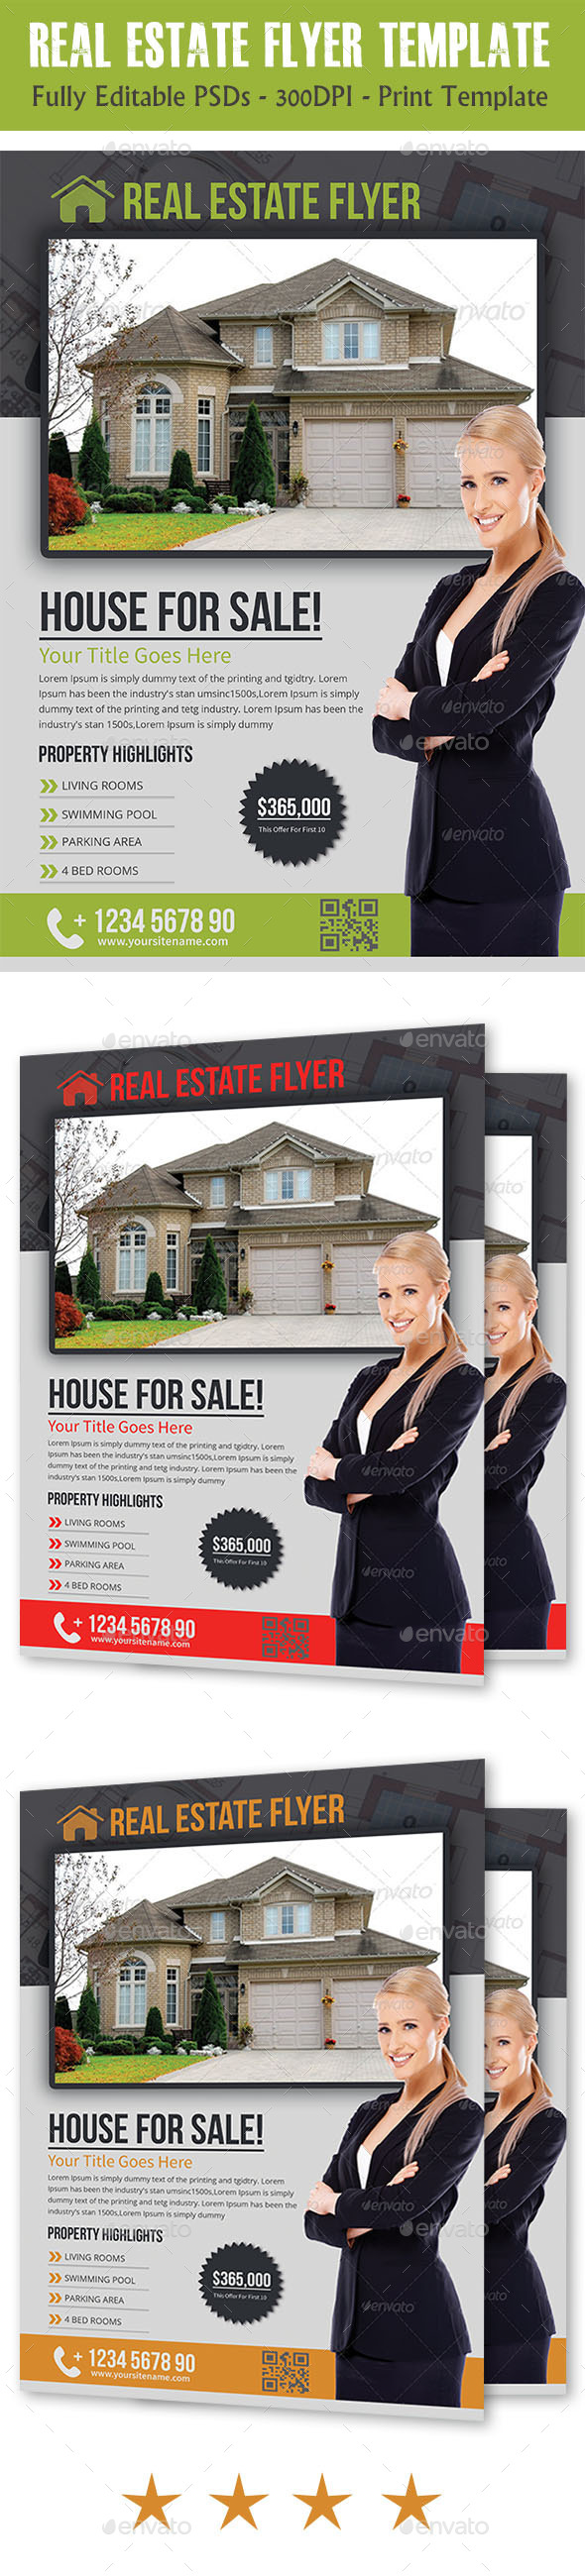 GraphicRiver Real Estate Flyer Temp 11438285